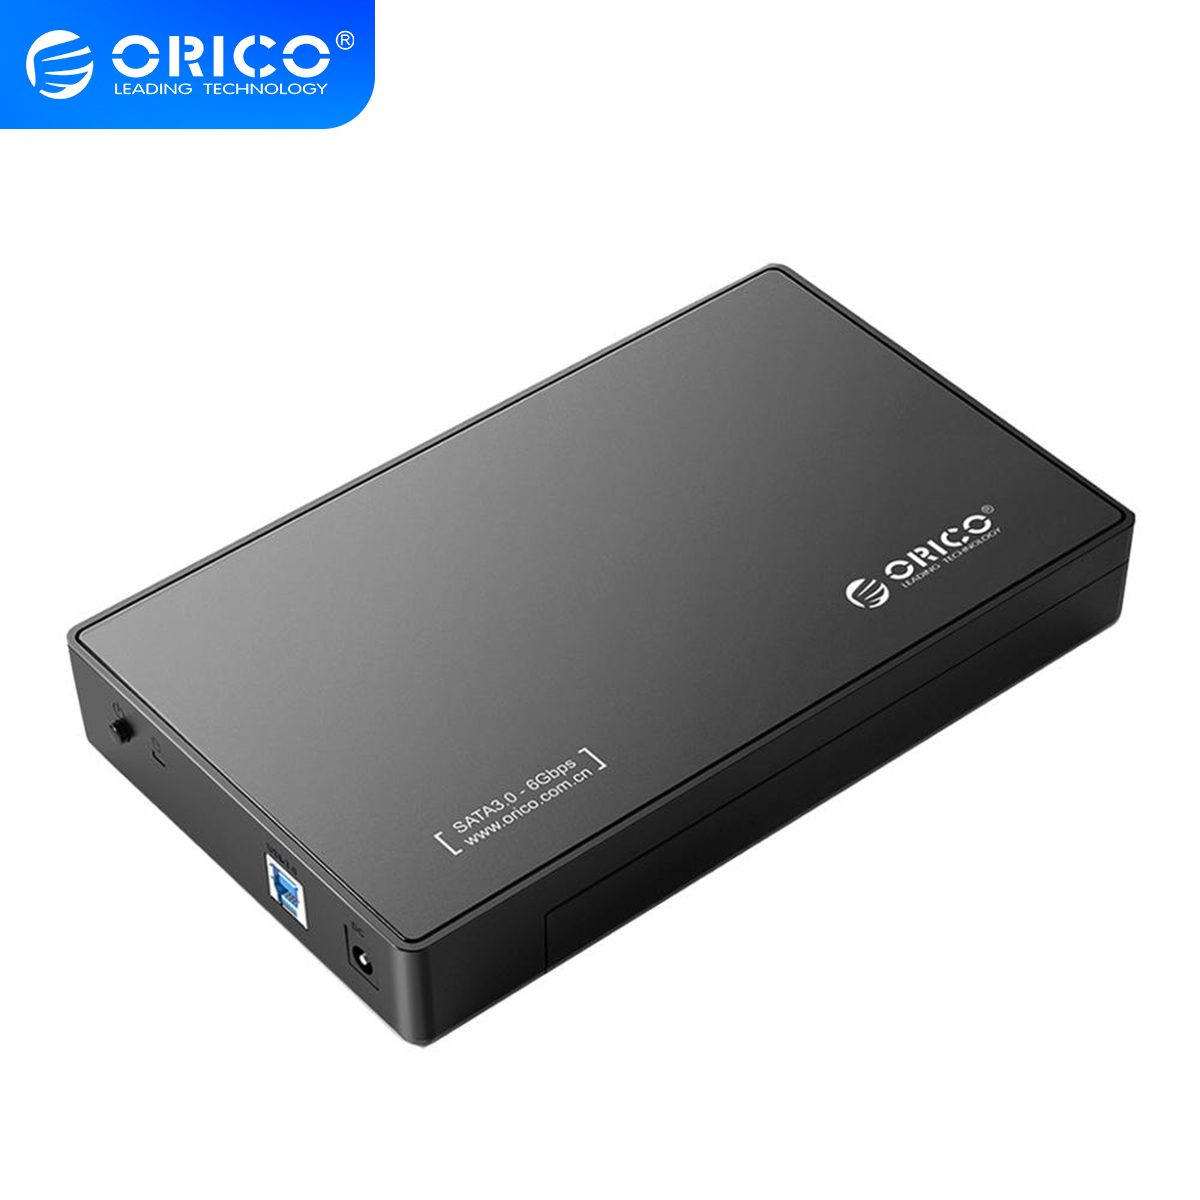 ORICO 3588US3 HDD Enclosure 3 5 inch SATA External Hard Drive Enclosure USB 3 0 HDD Case Tool Free  for 3 5inch SATA HDD and SSD